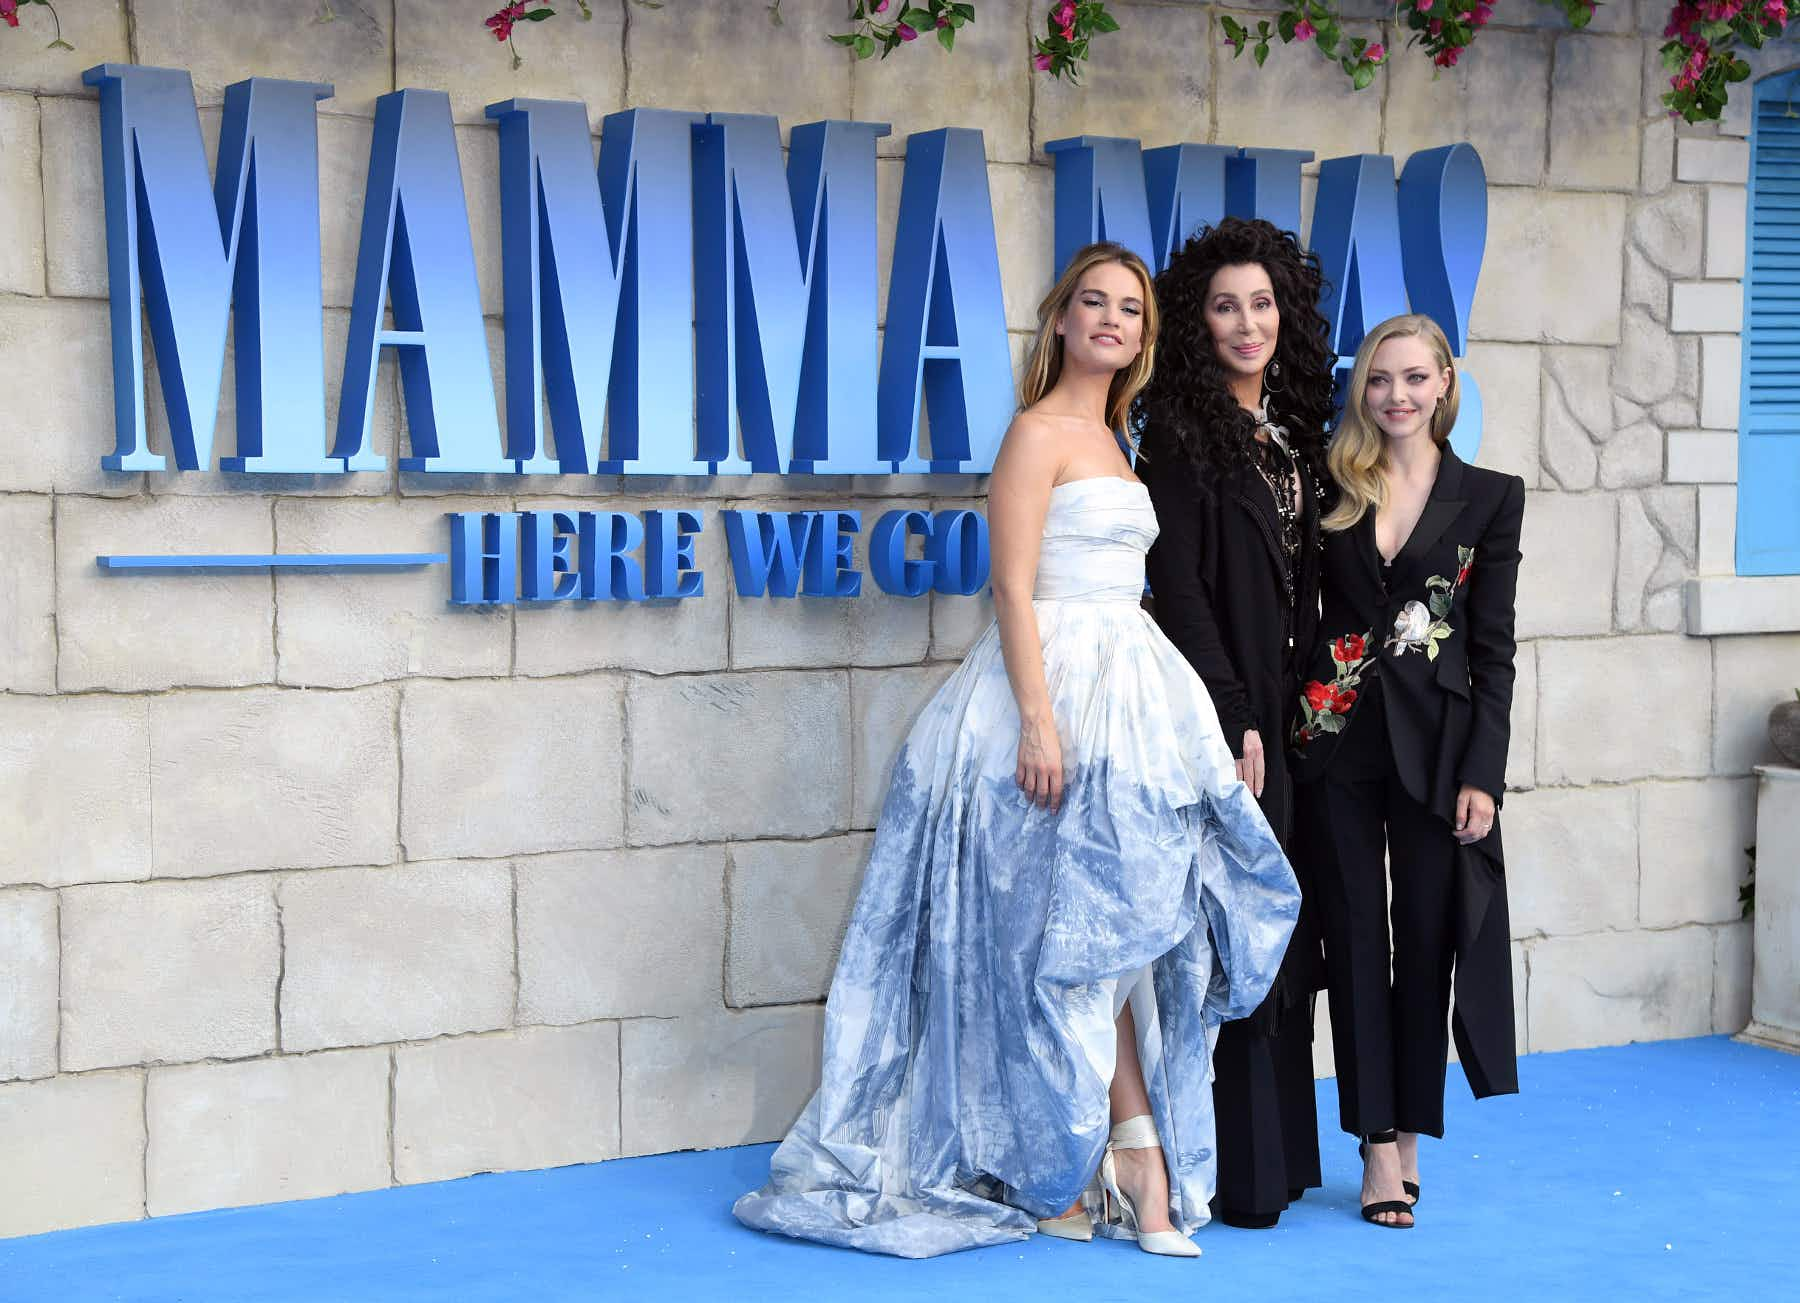 The Mamma Mia! sequel is here and its locations are just as enchanting as its musical numbers